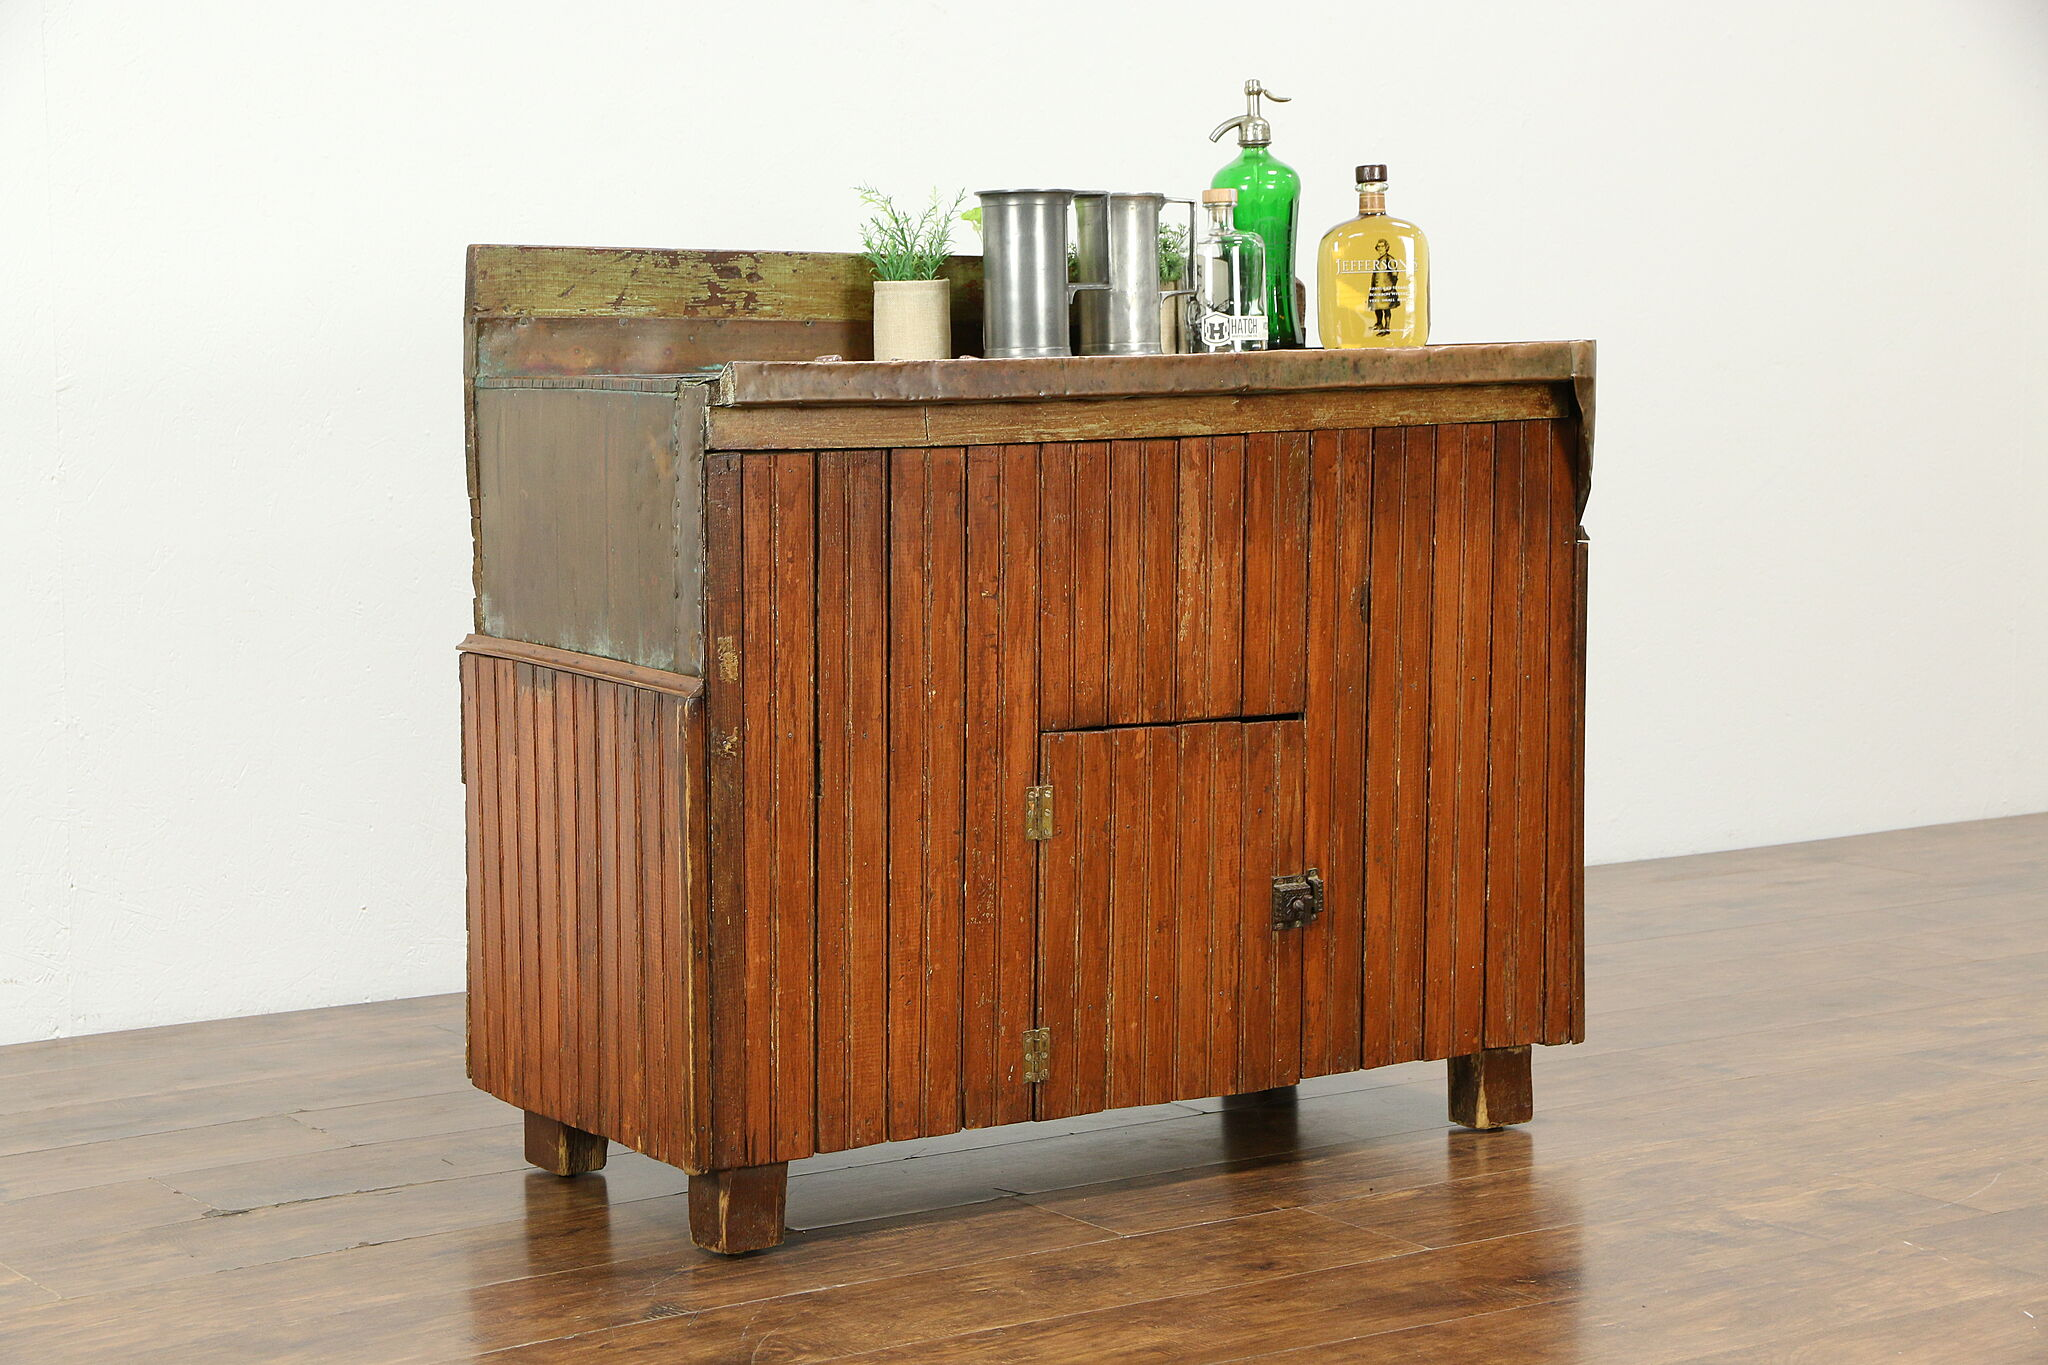 Picture of: Sold Country Pine Copper Primitive Antique Pub Bar Sink Cabinet 33789 Harp Gallery Antiques Furniture